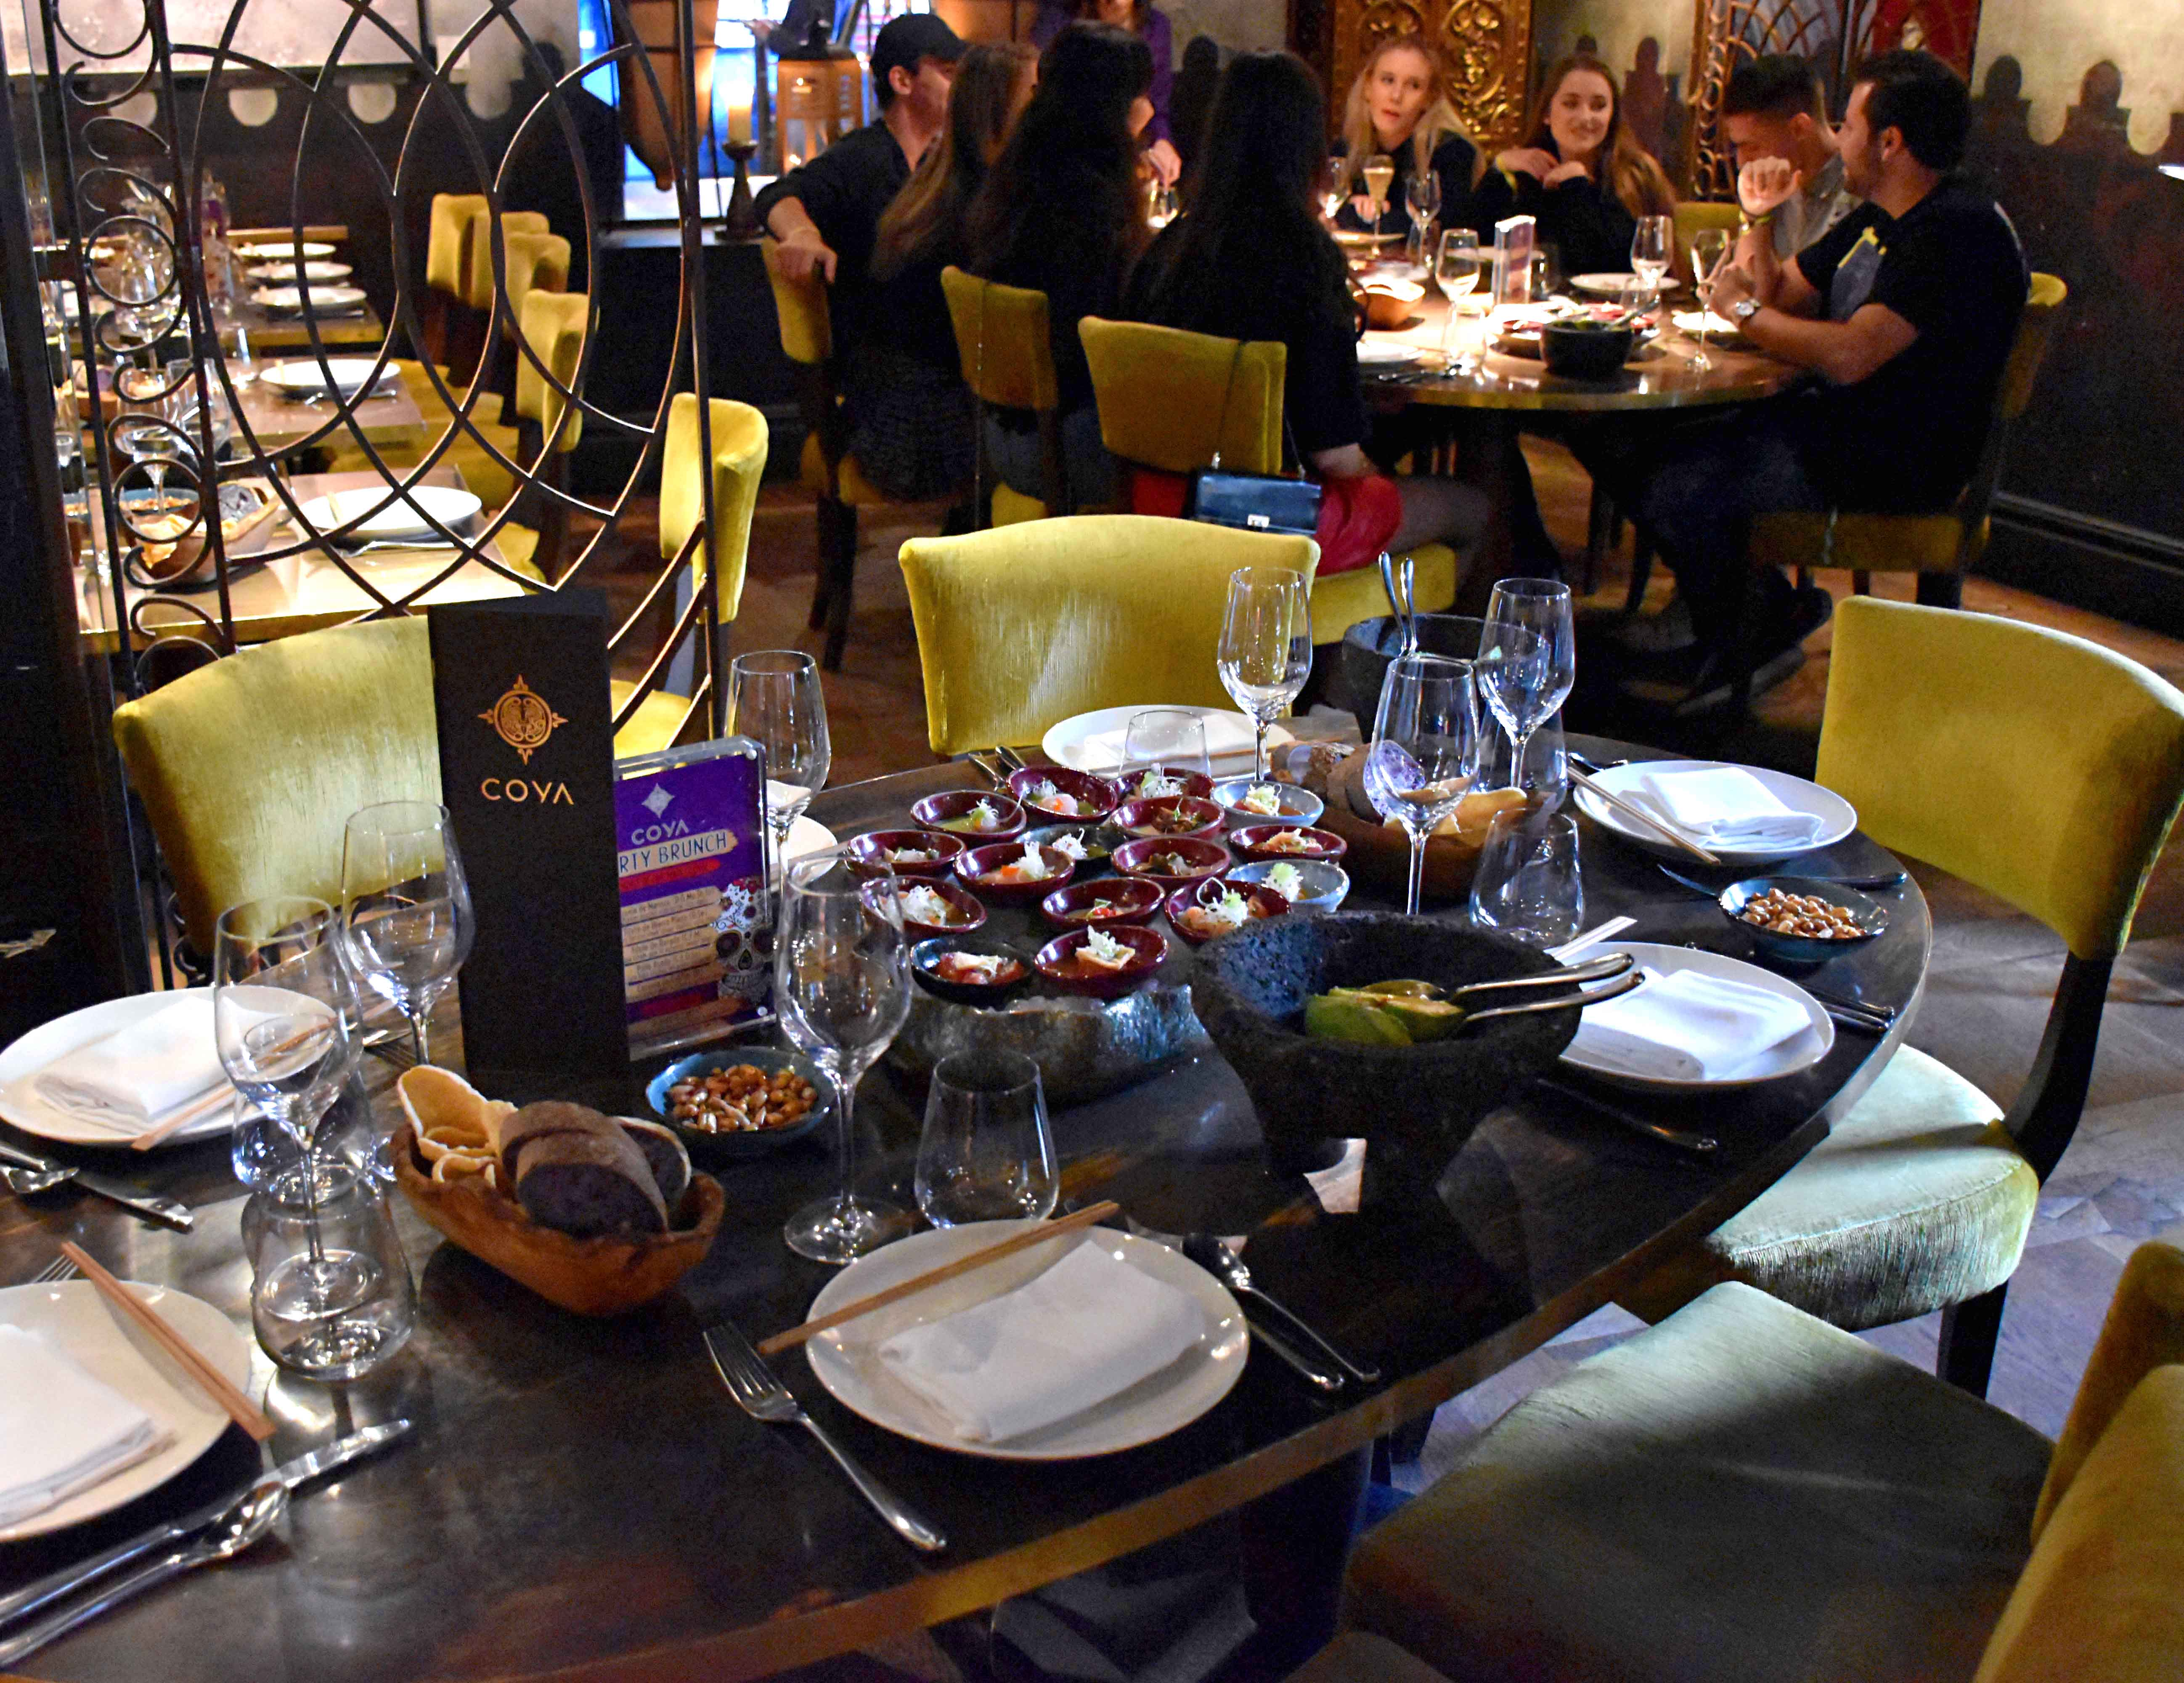 Coya Mayfair Party Brunch Review: A Luxurious 4 Hour Peruvian Brunch Experience | The Foodaholic